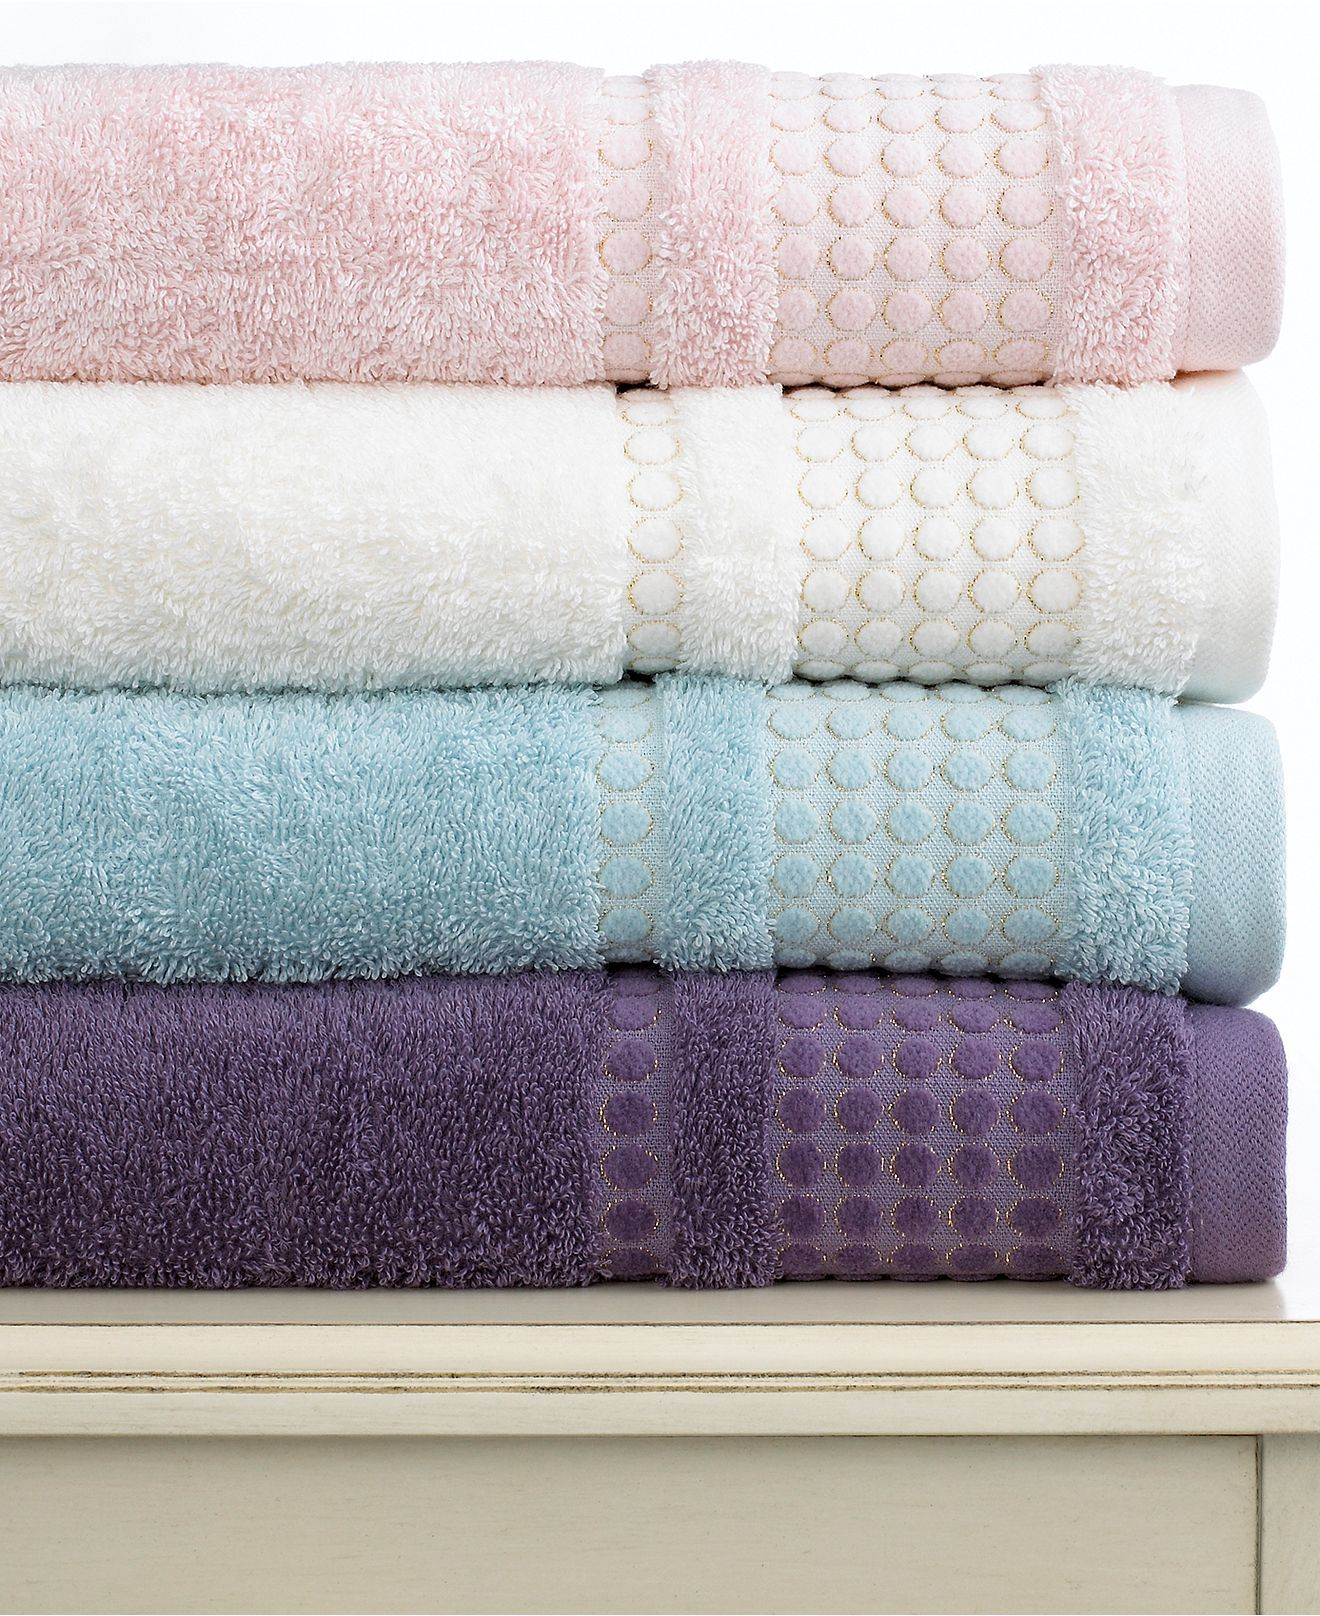 Bianca Bath Towels Art Deco Collection Bath Towels Bed Bath - Lilac bath towels for small bathroom ideas